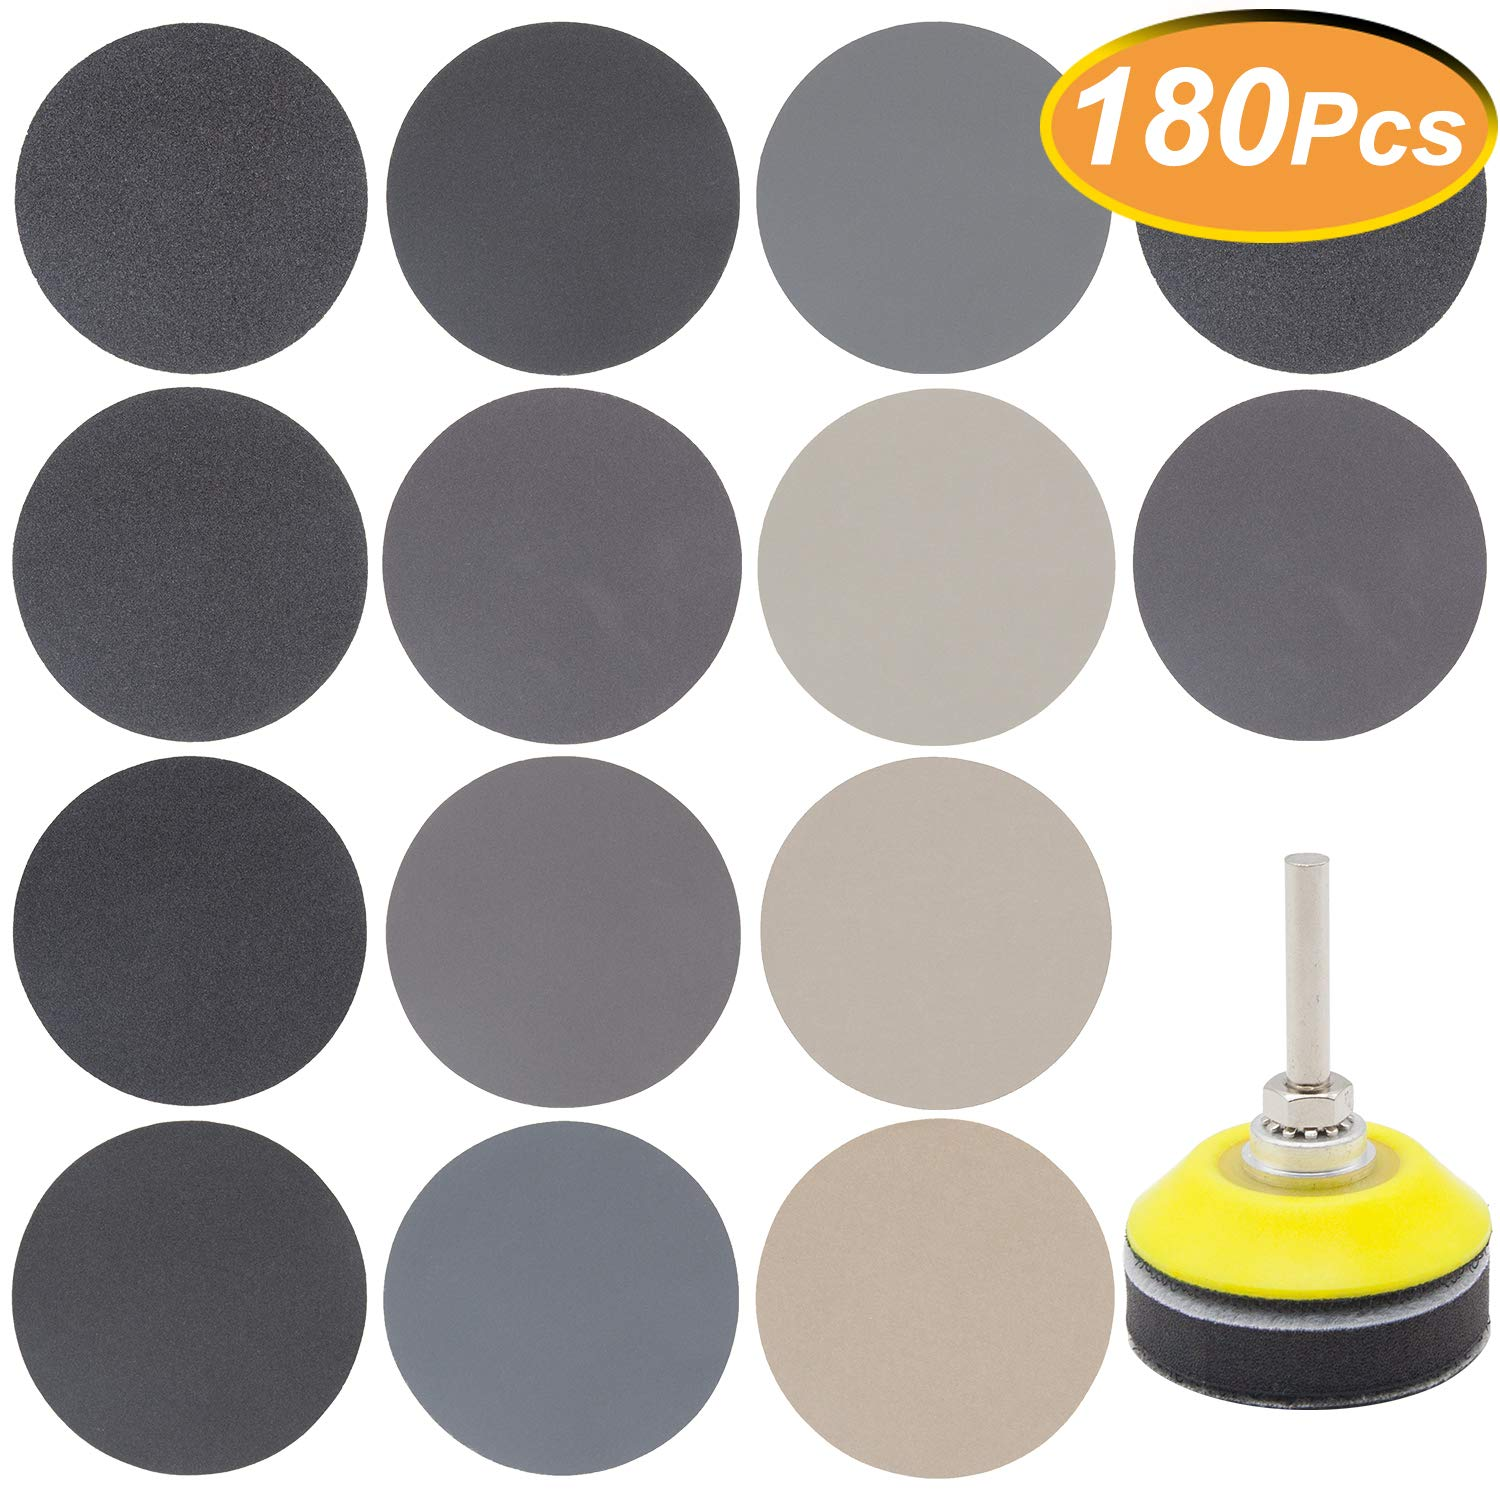 """180 PCS 2 Inch Sandpaper, GOH DODD Wet Dry Sander Sheets with Backer Plate 1/4"""" Shank and Soft Foam Buffering Pad, 60 to 10000 Grits Grinding Abrasive Sanding Disc for Wood Metal Mirror Jewelry Car"""